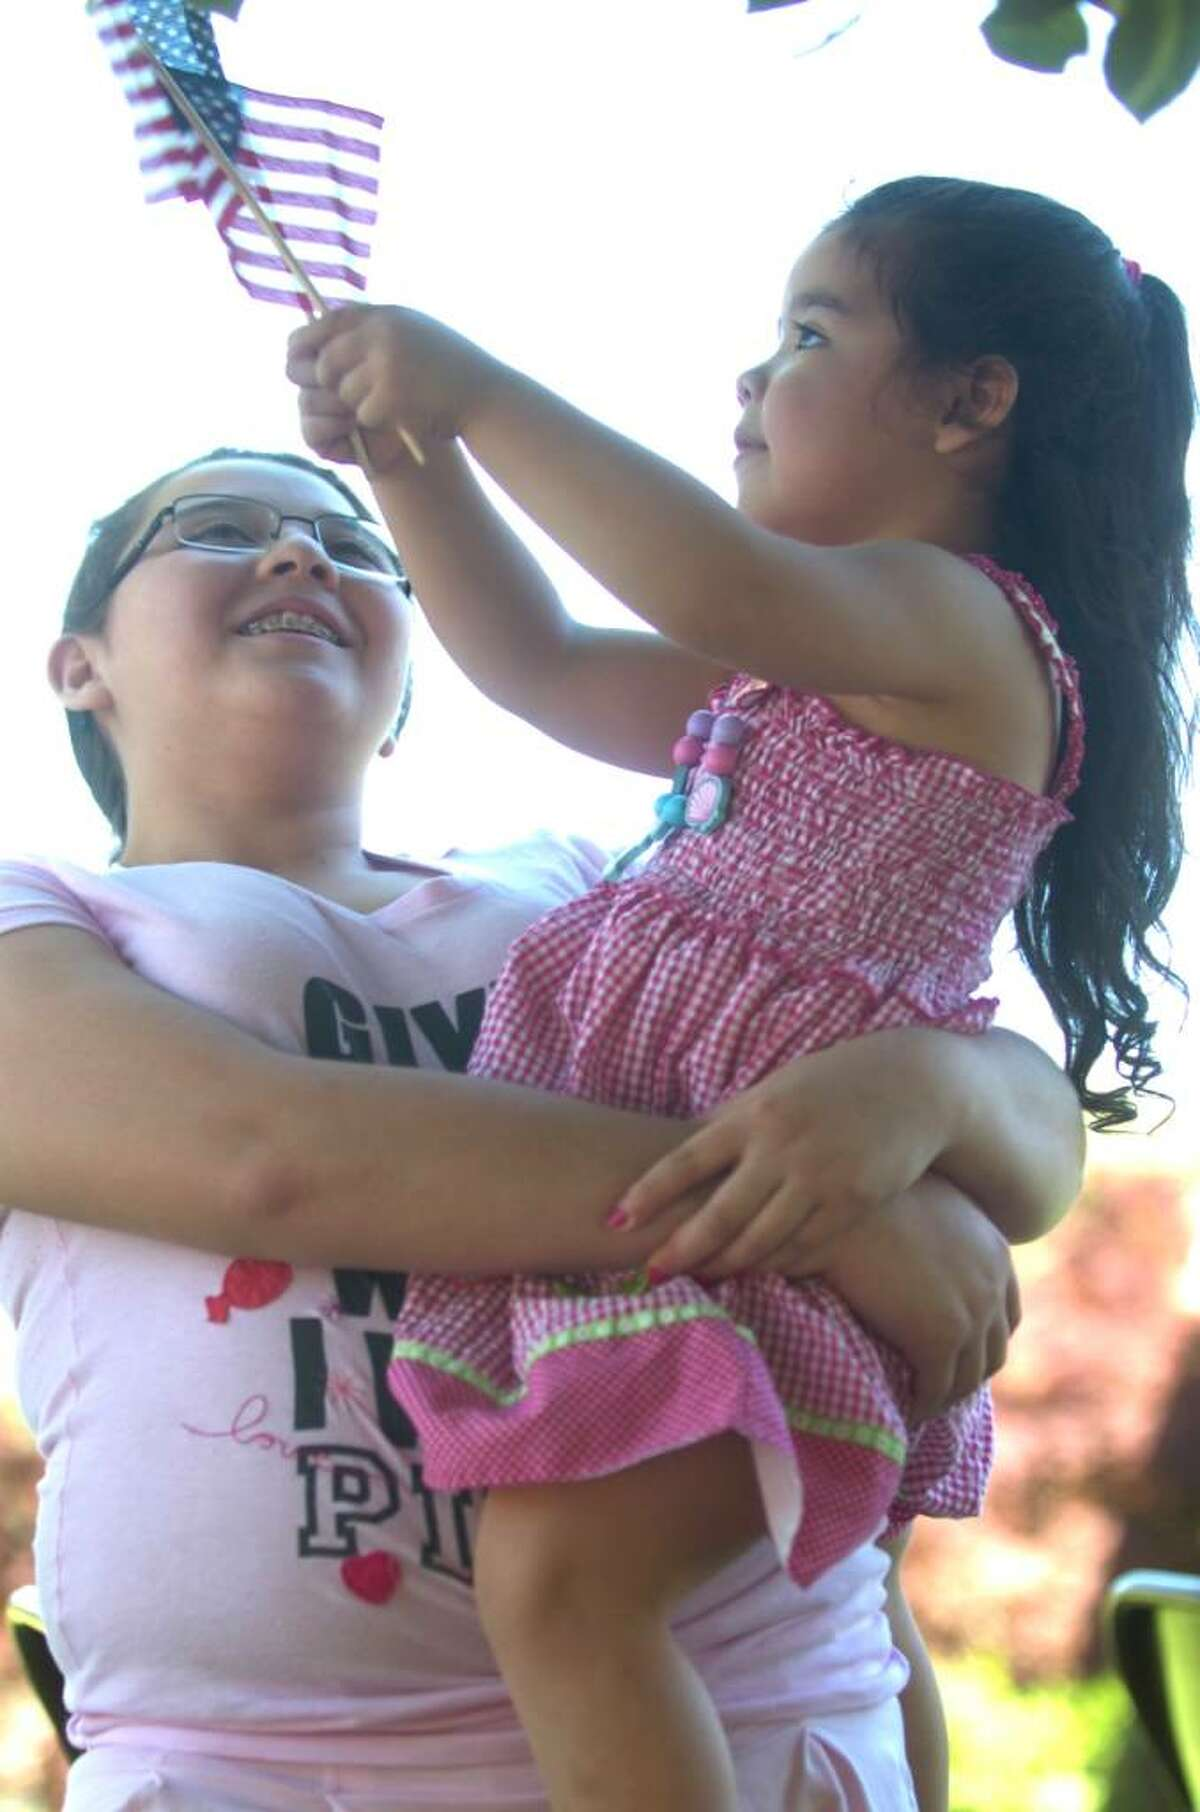 Fernenda Moreno, 12, carries her sister Camila, 3, at the Bryam parade on Sunday, May 30, 2010.